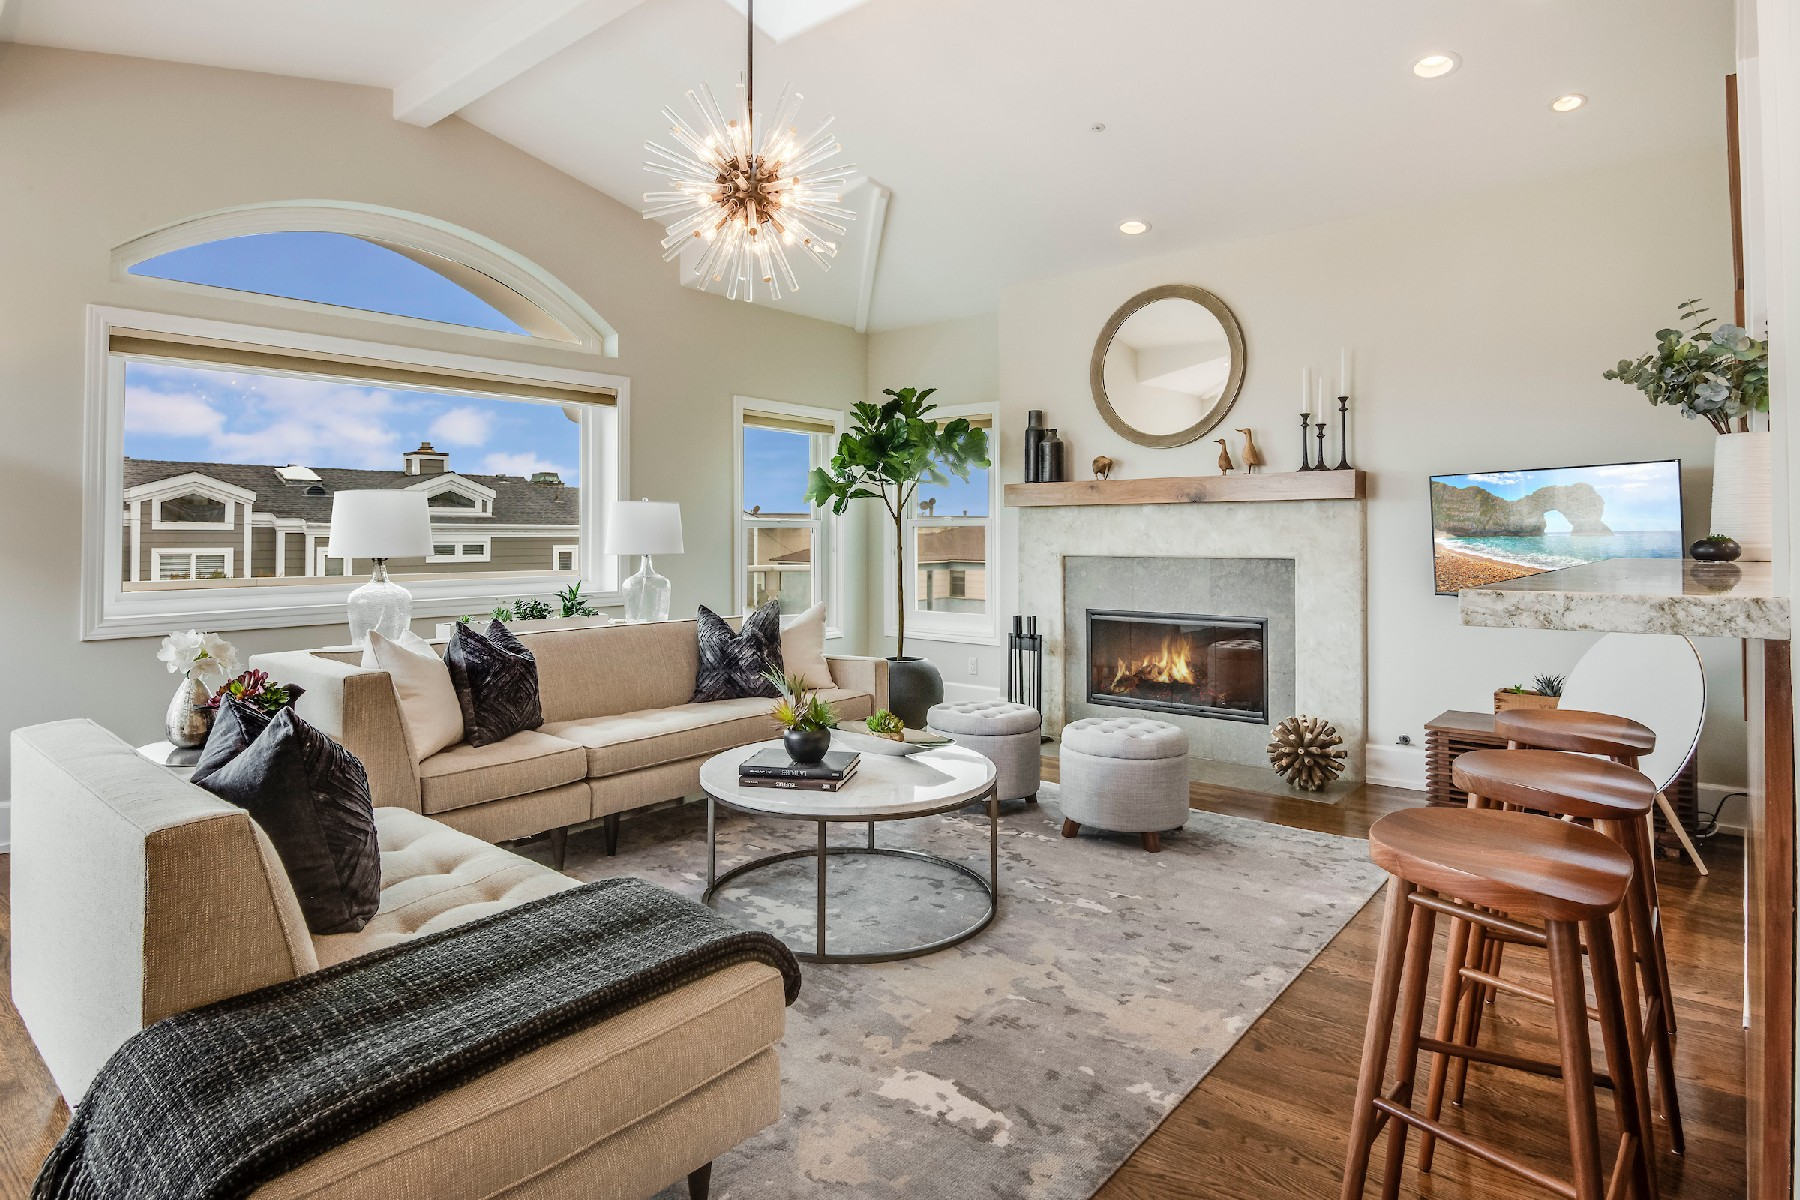 townhouses for Active at 305 3rd Street, Manhattan Beach, CA 90266 305 3rd Street Manhattan Beach, California 90266 United States